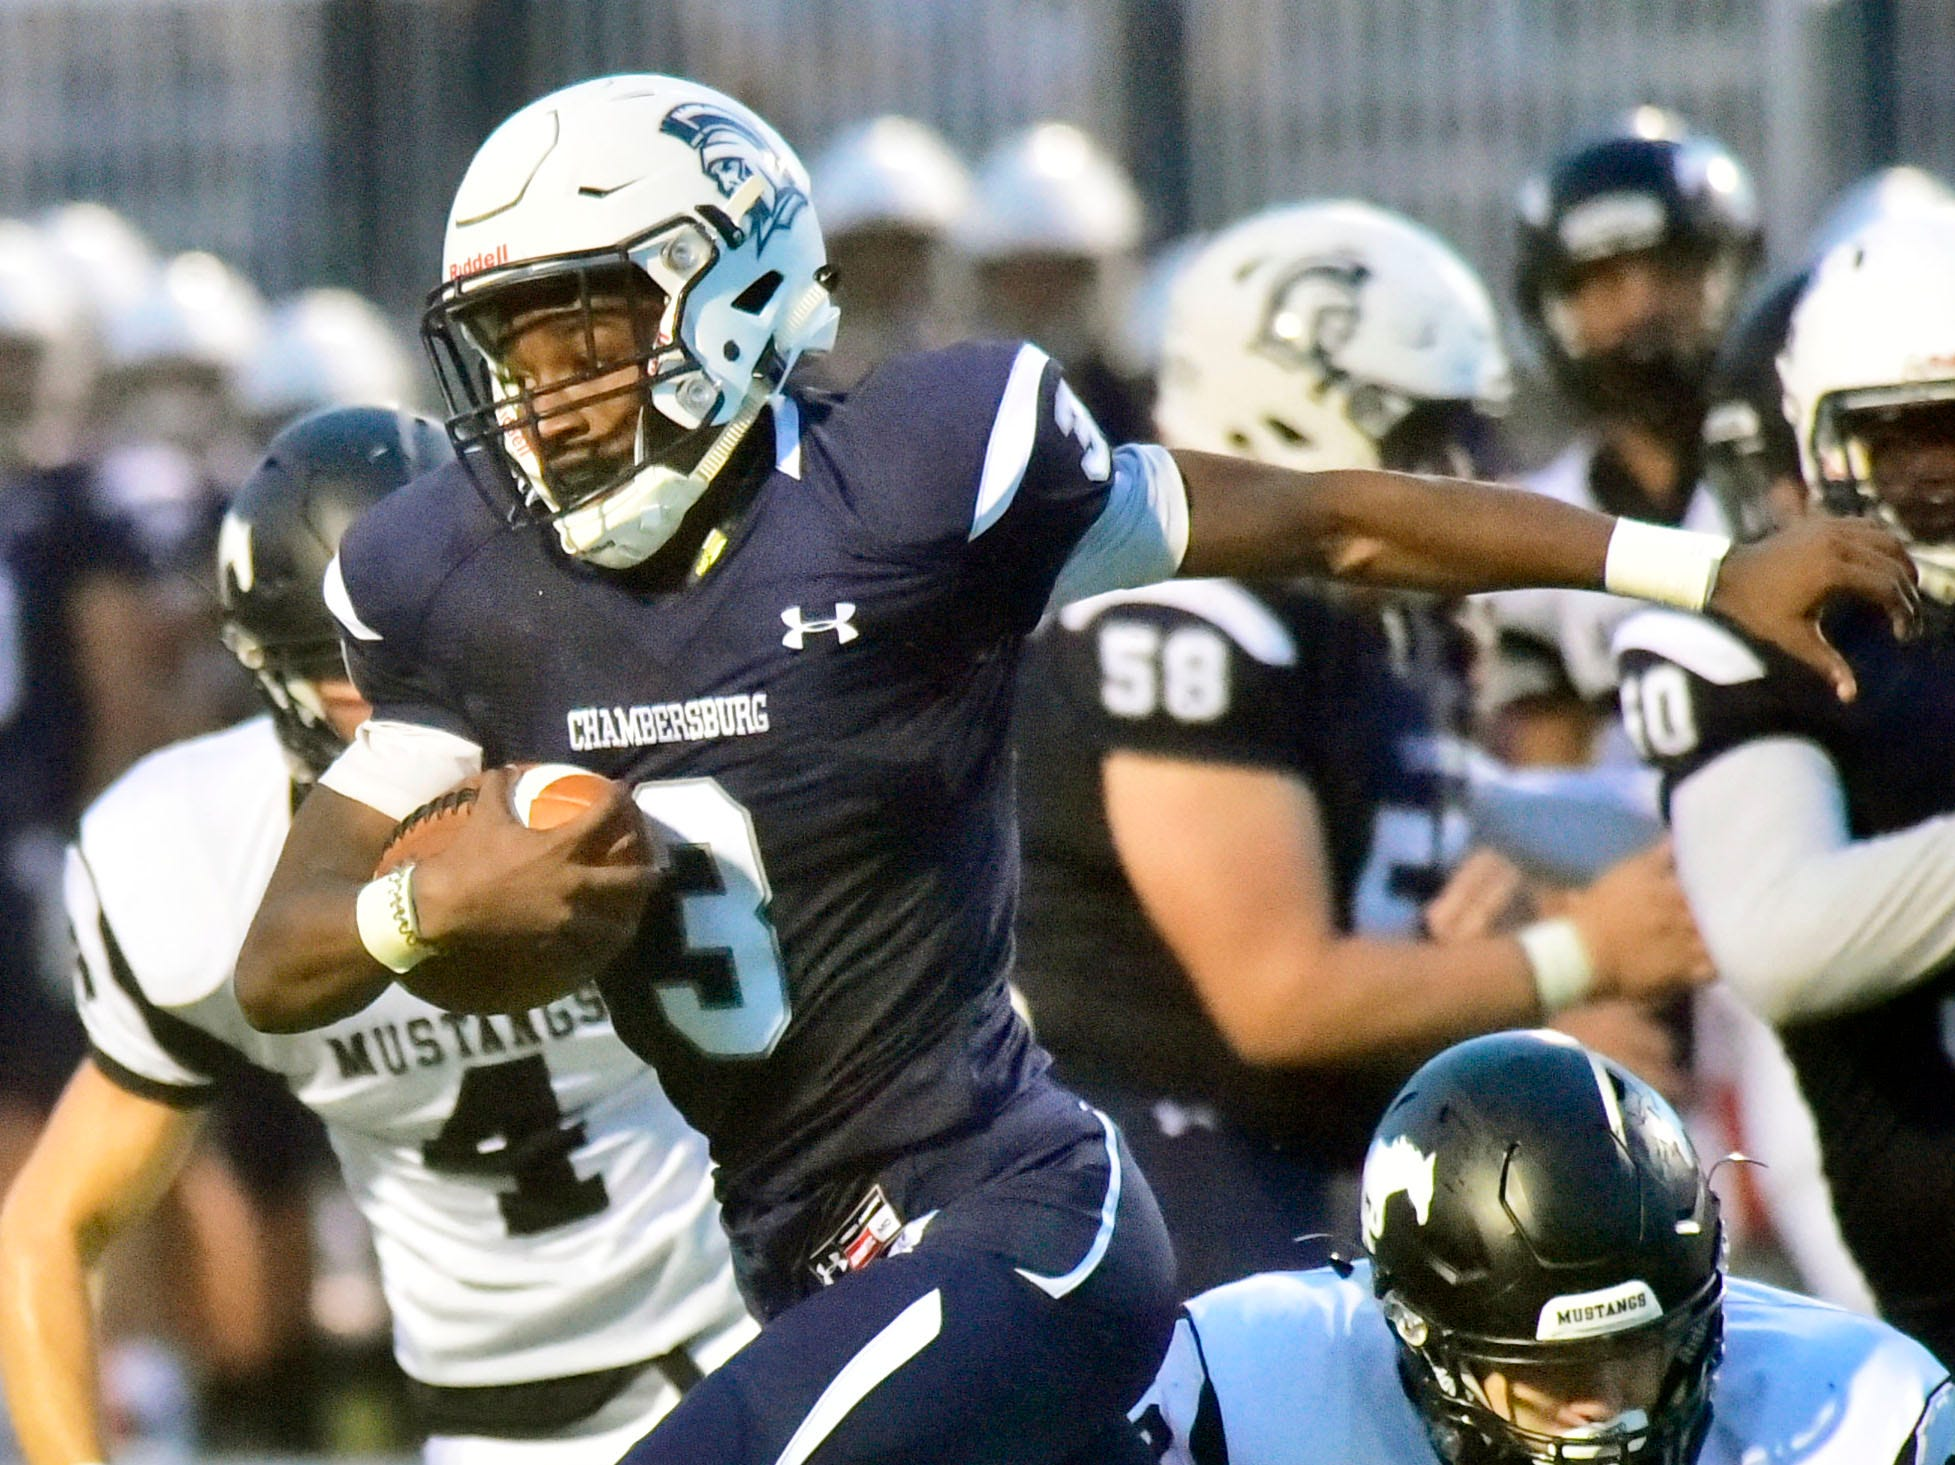 Chambersburg's Tyeshawn Worrell (3) returns the ball for the Trojans. Chambersburg defeated South Western 51-26 in football on Friday, Aug. 31, 2018.